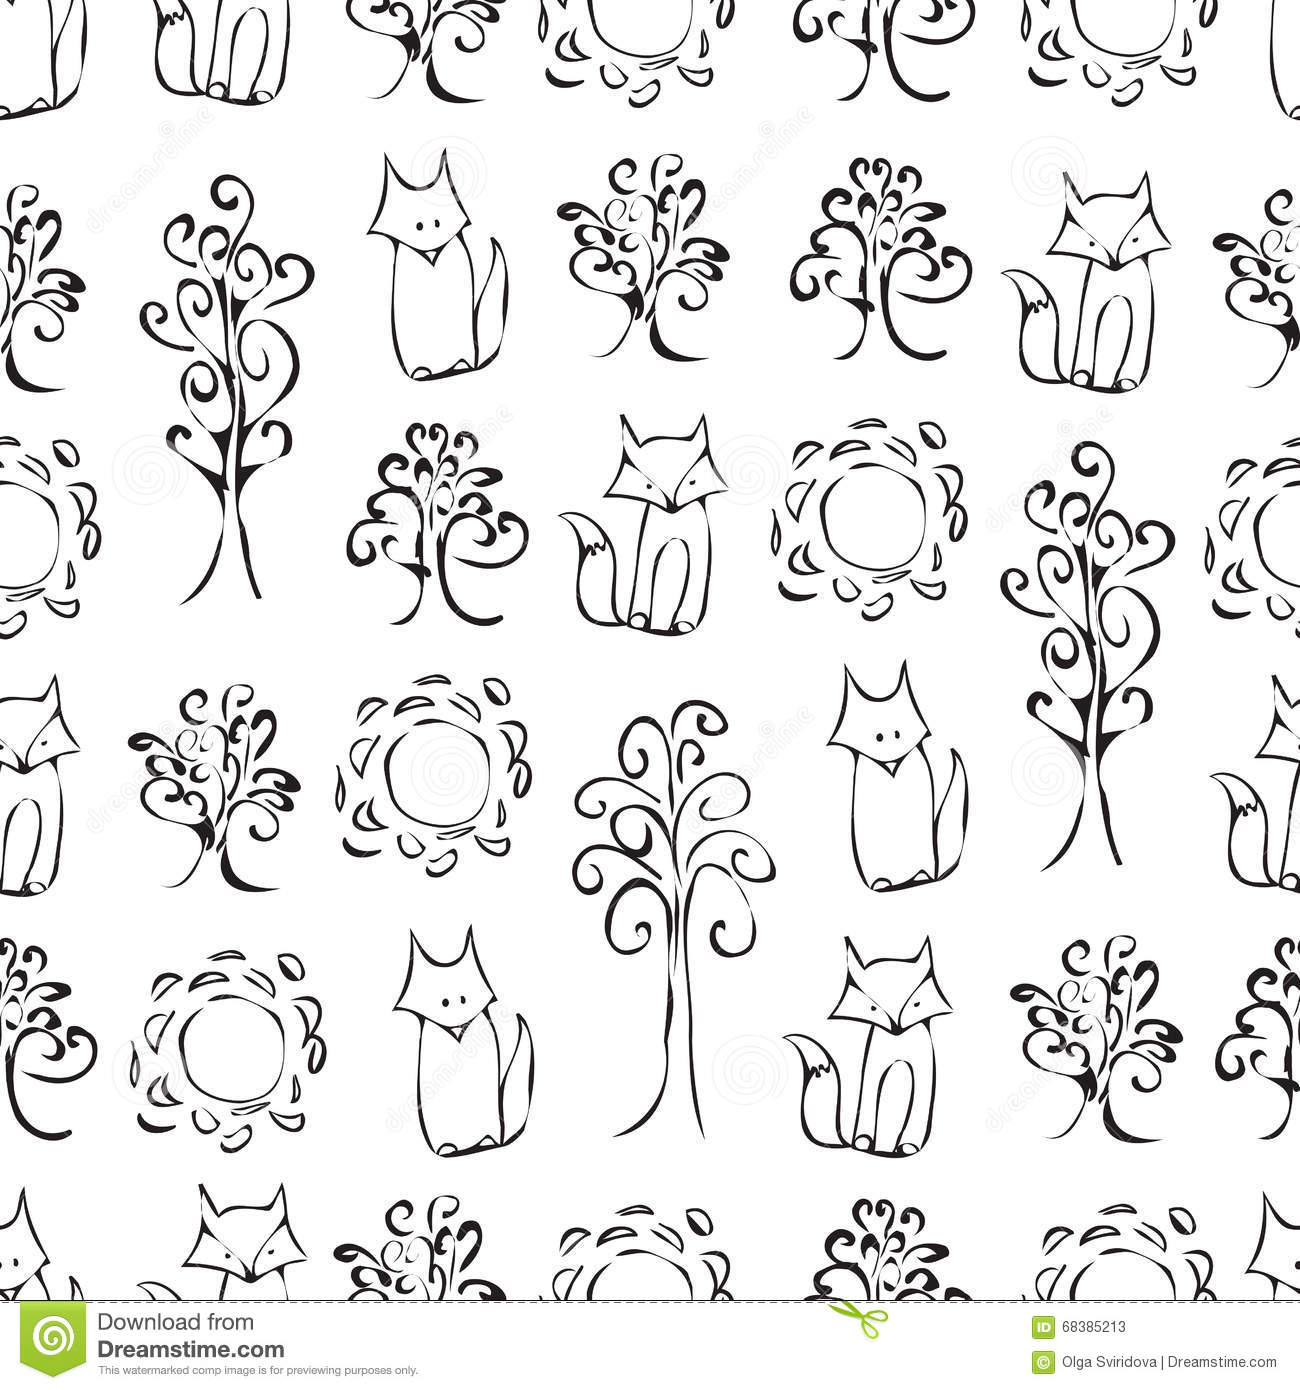 Cute forest animals black and white